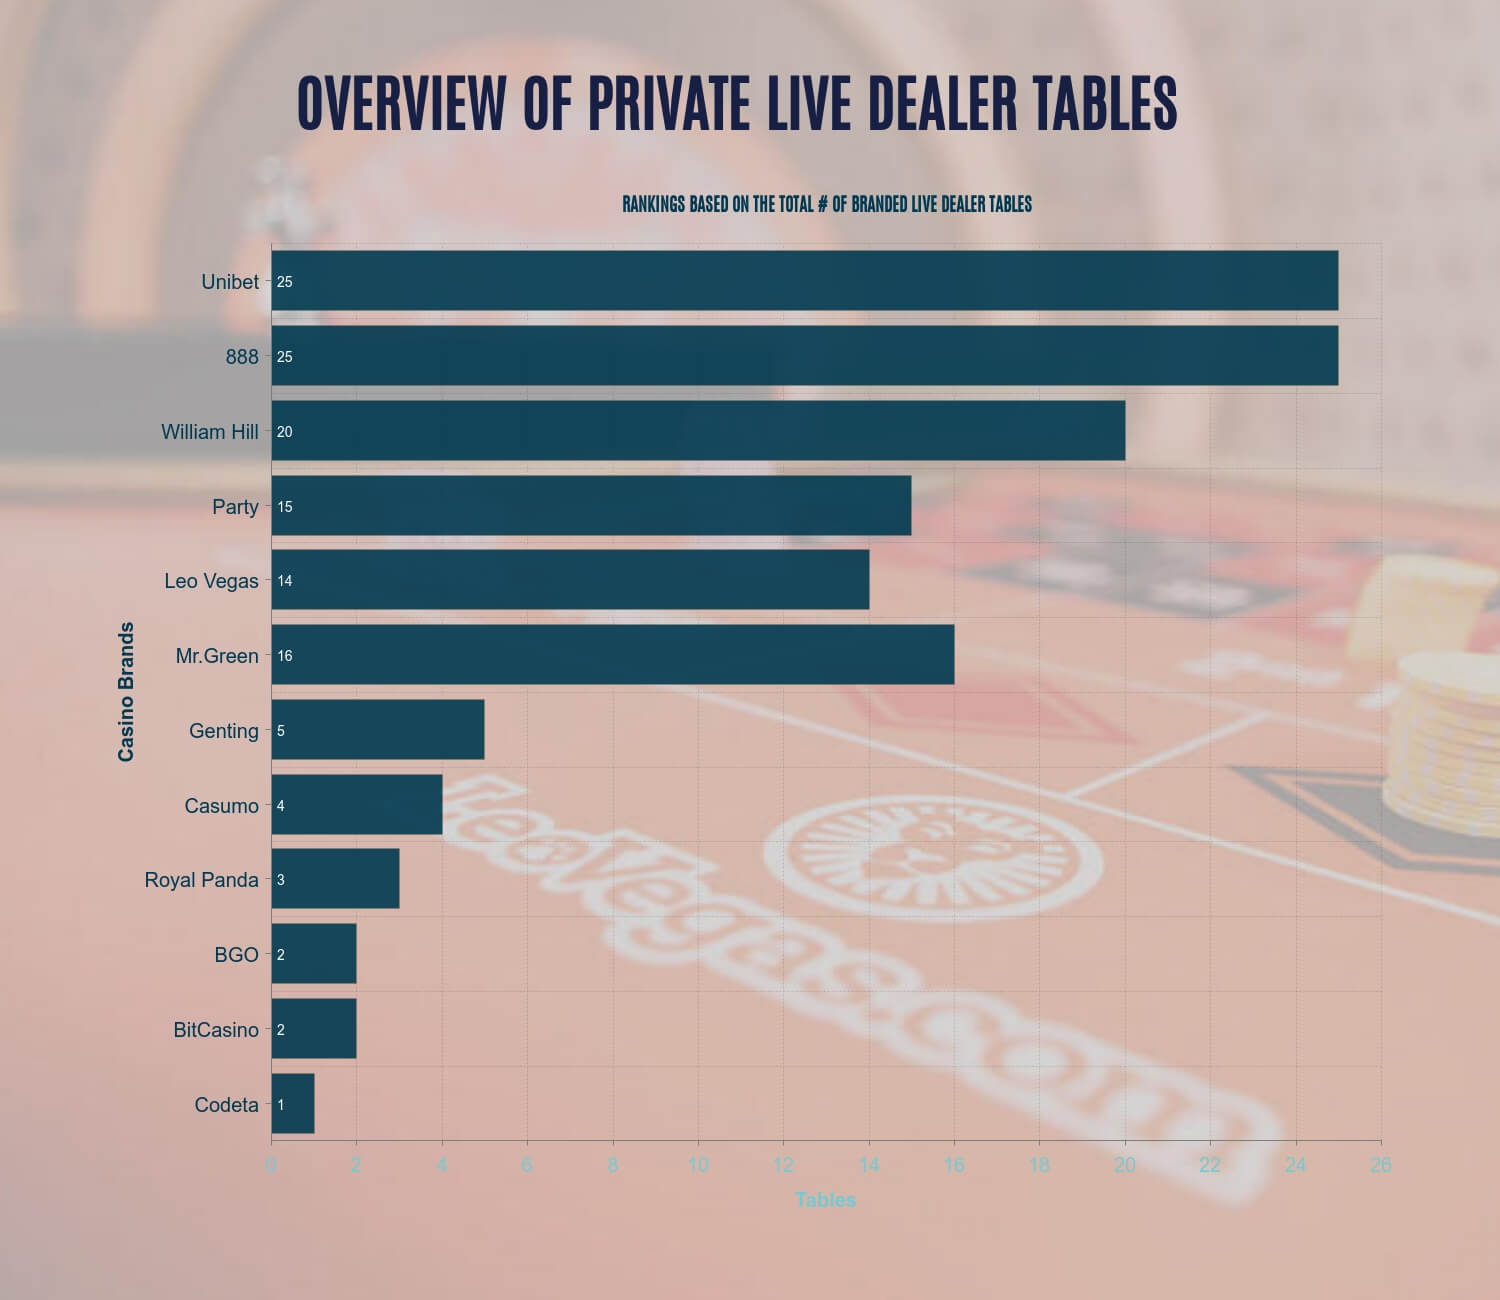 Visual comparison of the number of private live dealer tables per casino